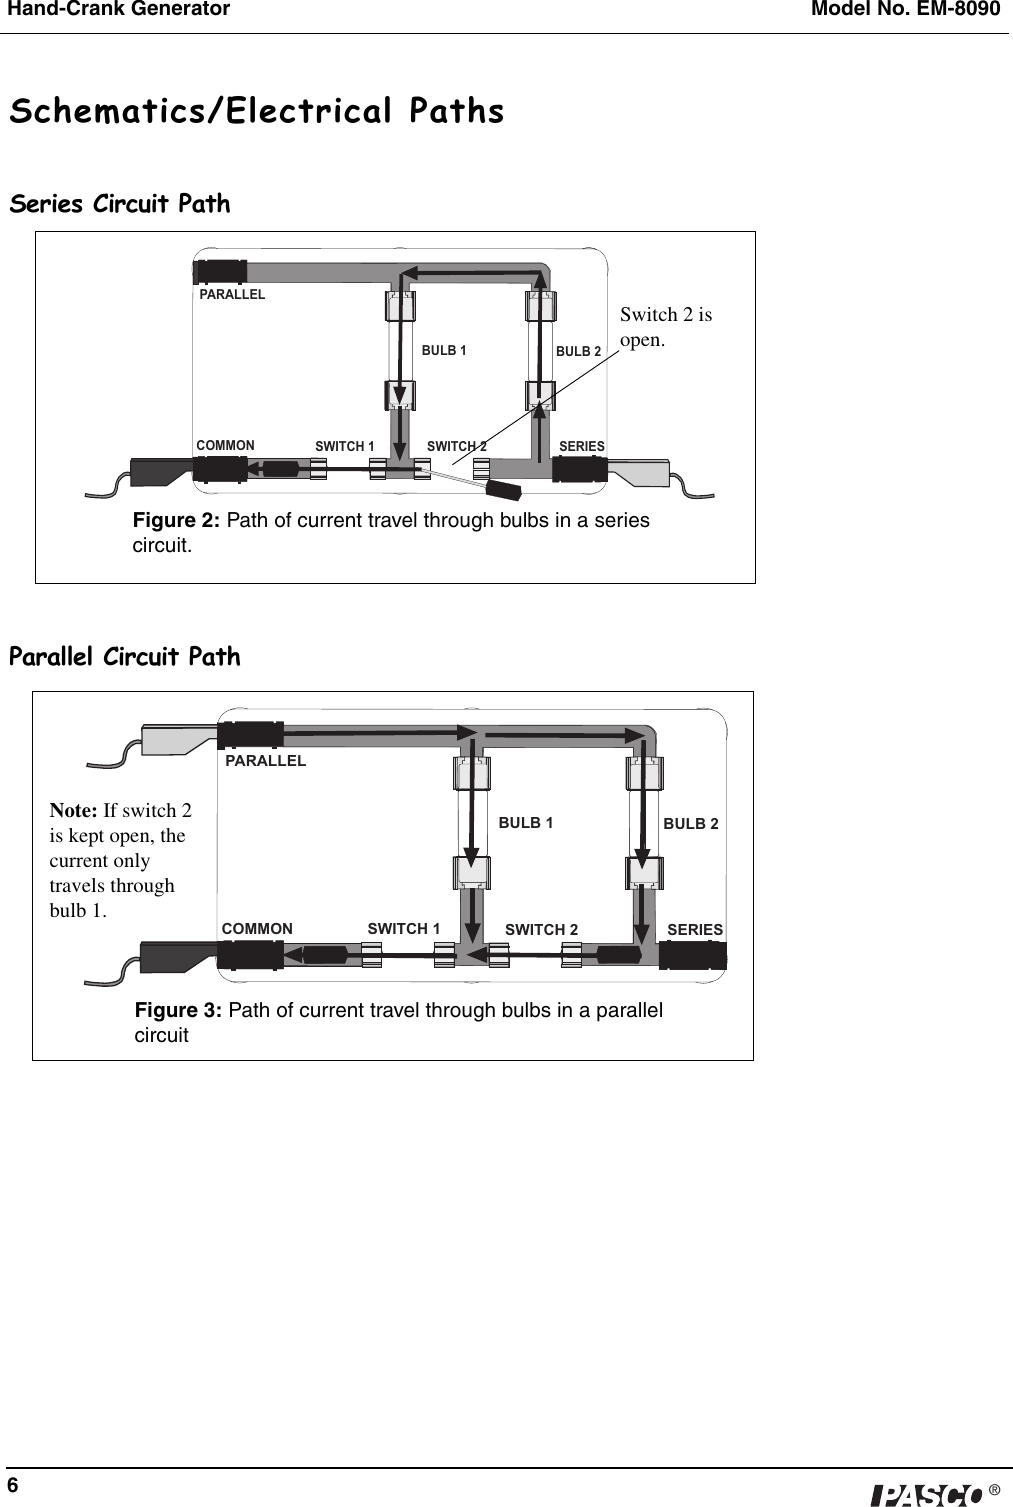 Pasco Specialty And Mfg Hand Crank Generator Em 8090 Users Manual Series Circuit With 3 Bulbs Page 7 Of 9